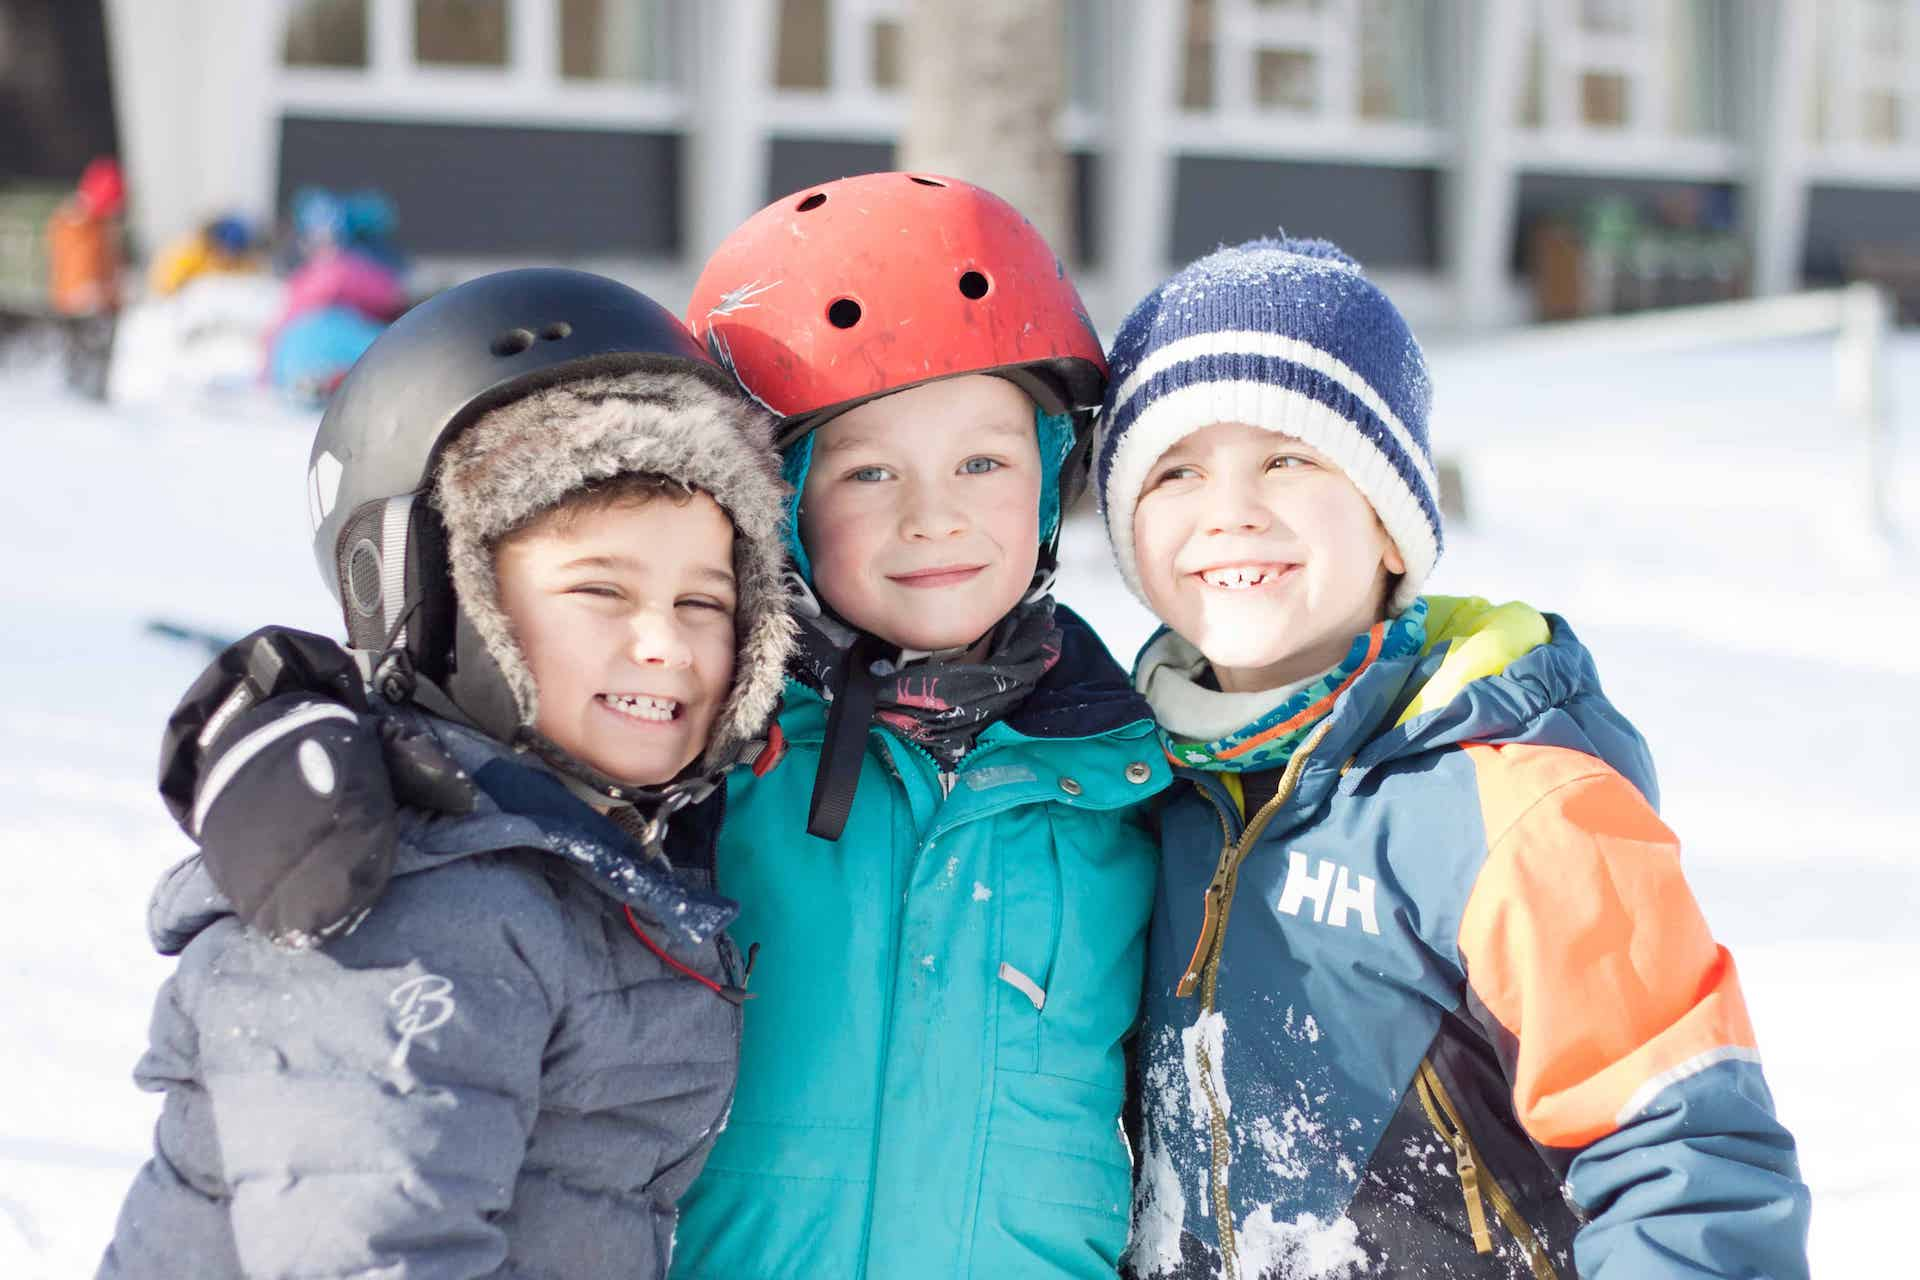 Arendal International School offers After School Care (SFO) that is open for students from Grade 1 to Grade 4.